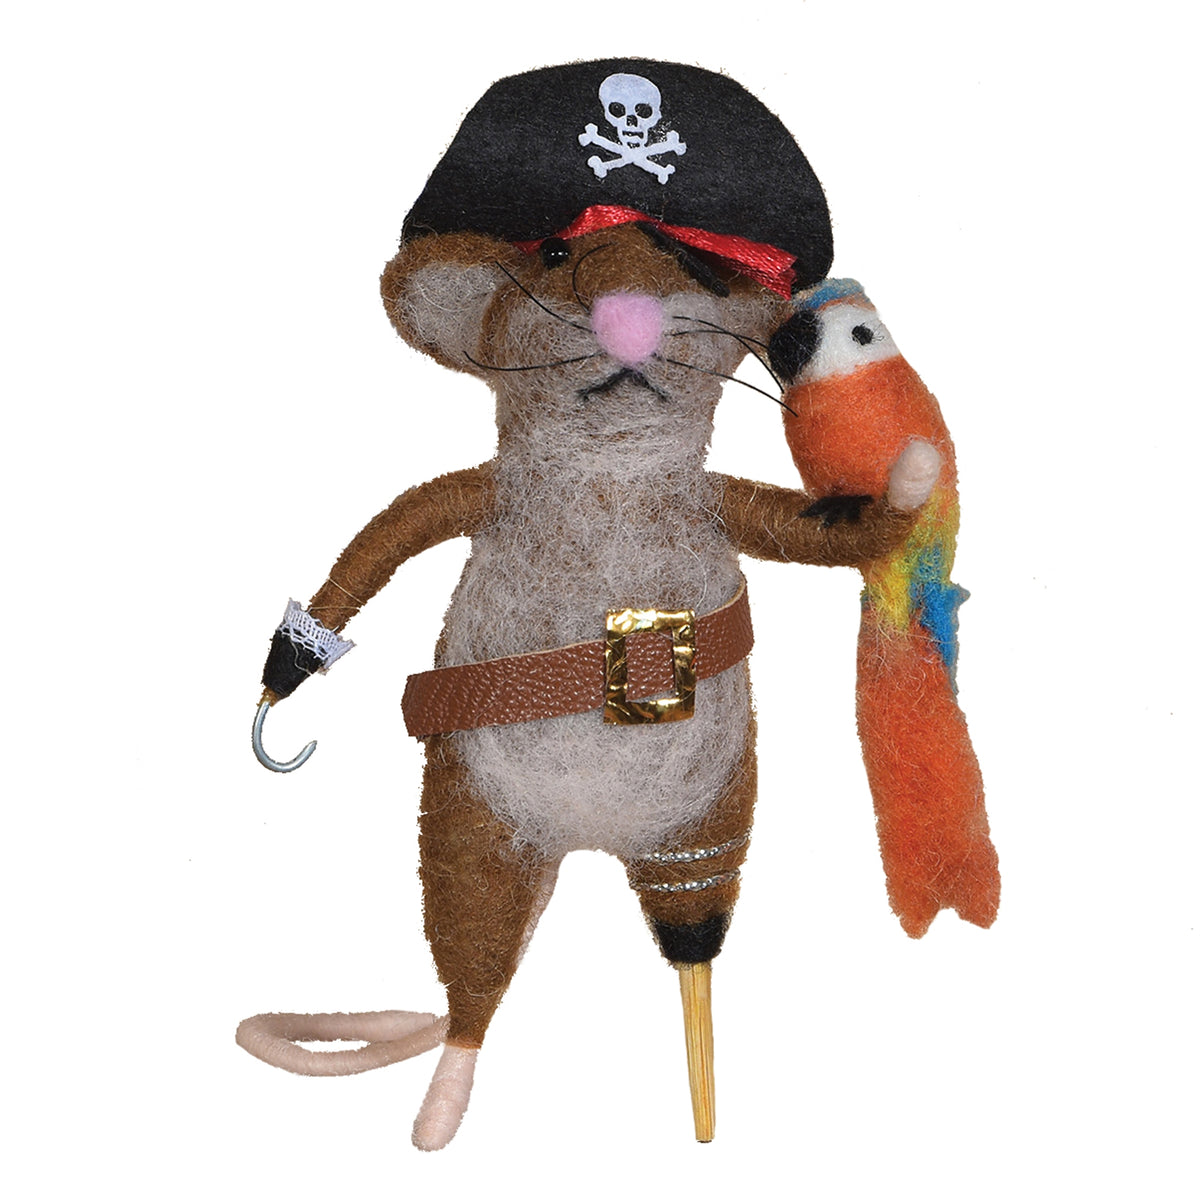 FELT PIRATE MOUSE ORNAMENT